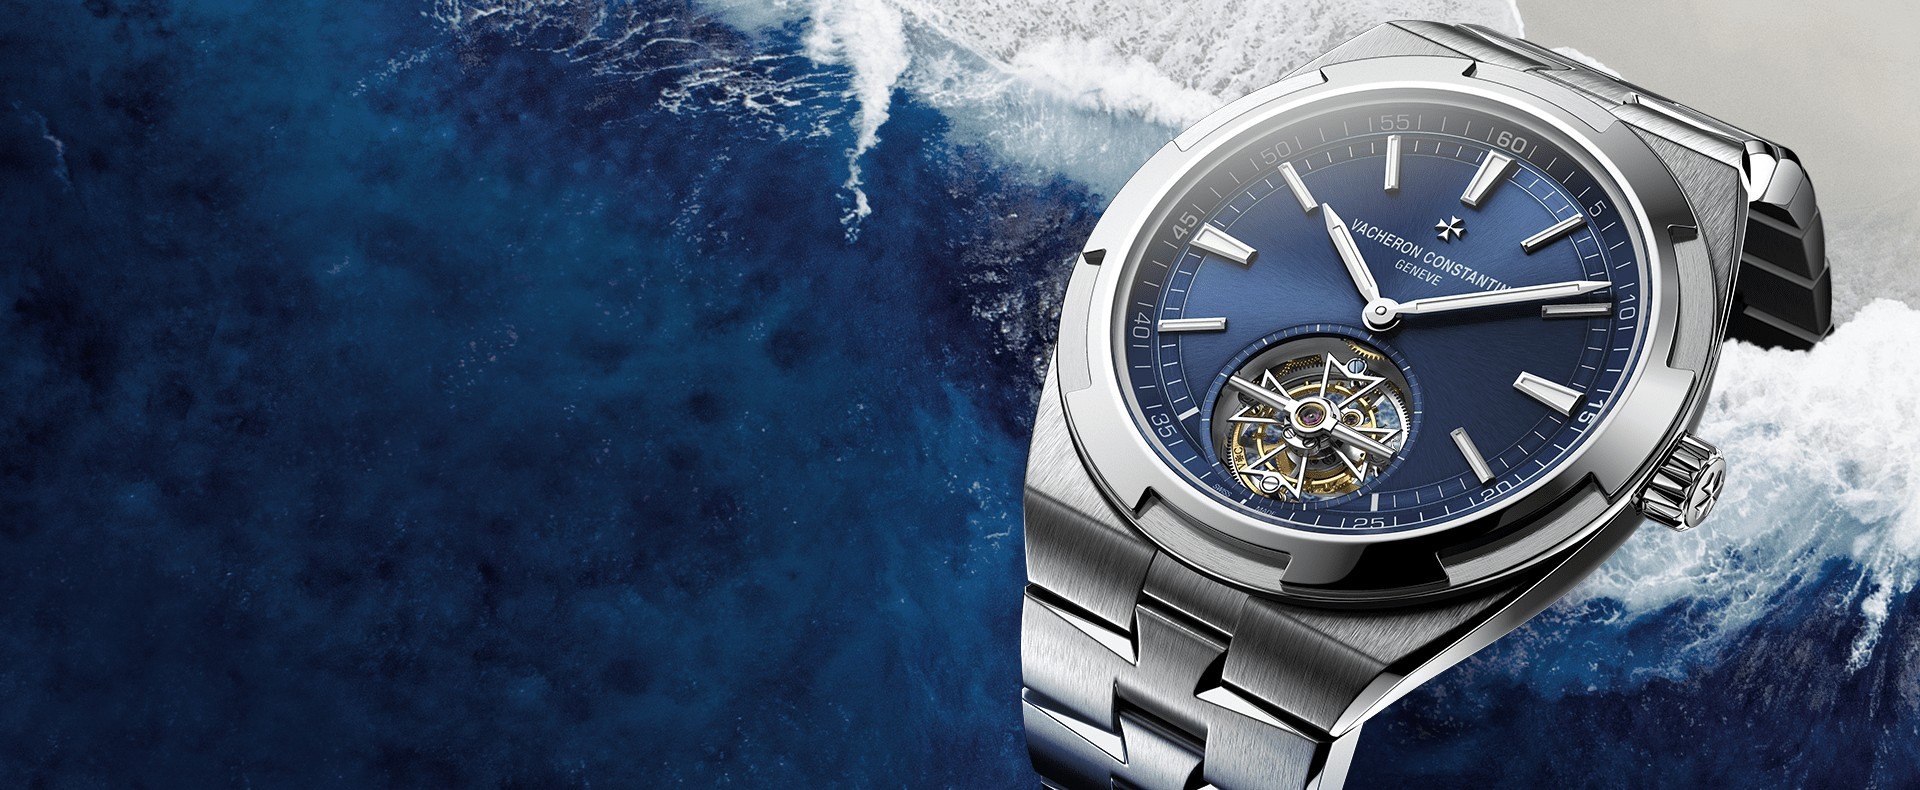 Vacheron Constantin - Luxury Watches und Fine Watches  - SIHH 2019